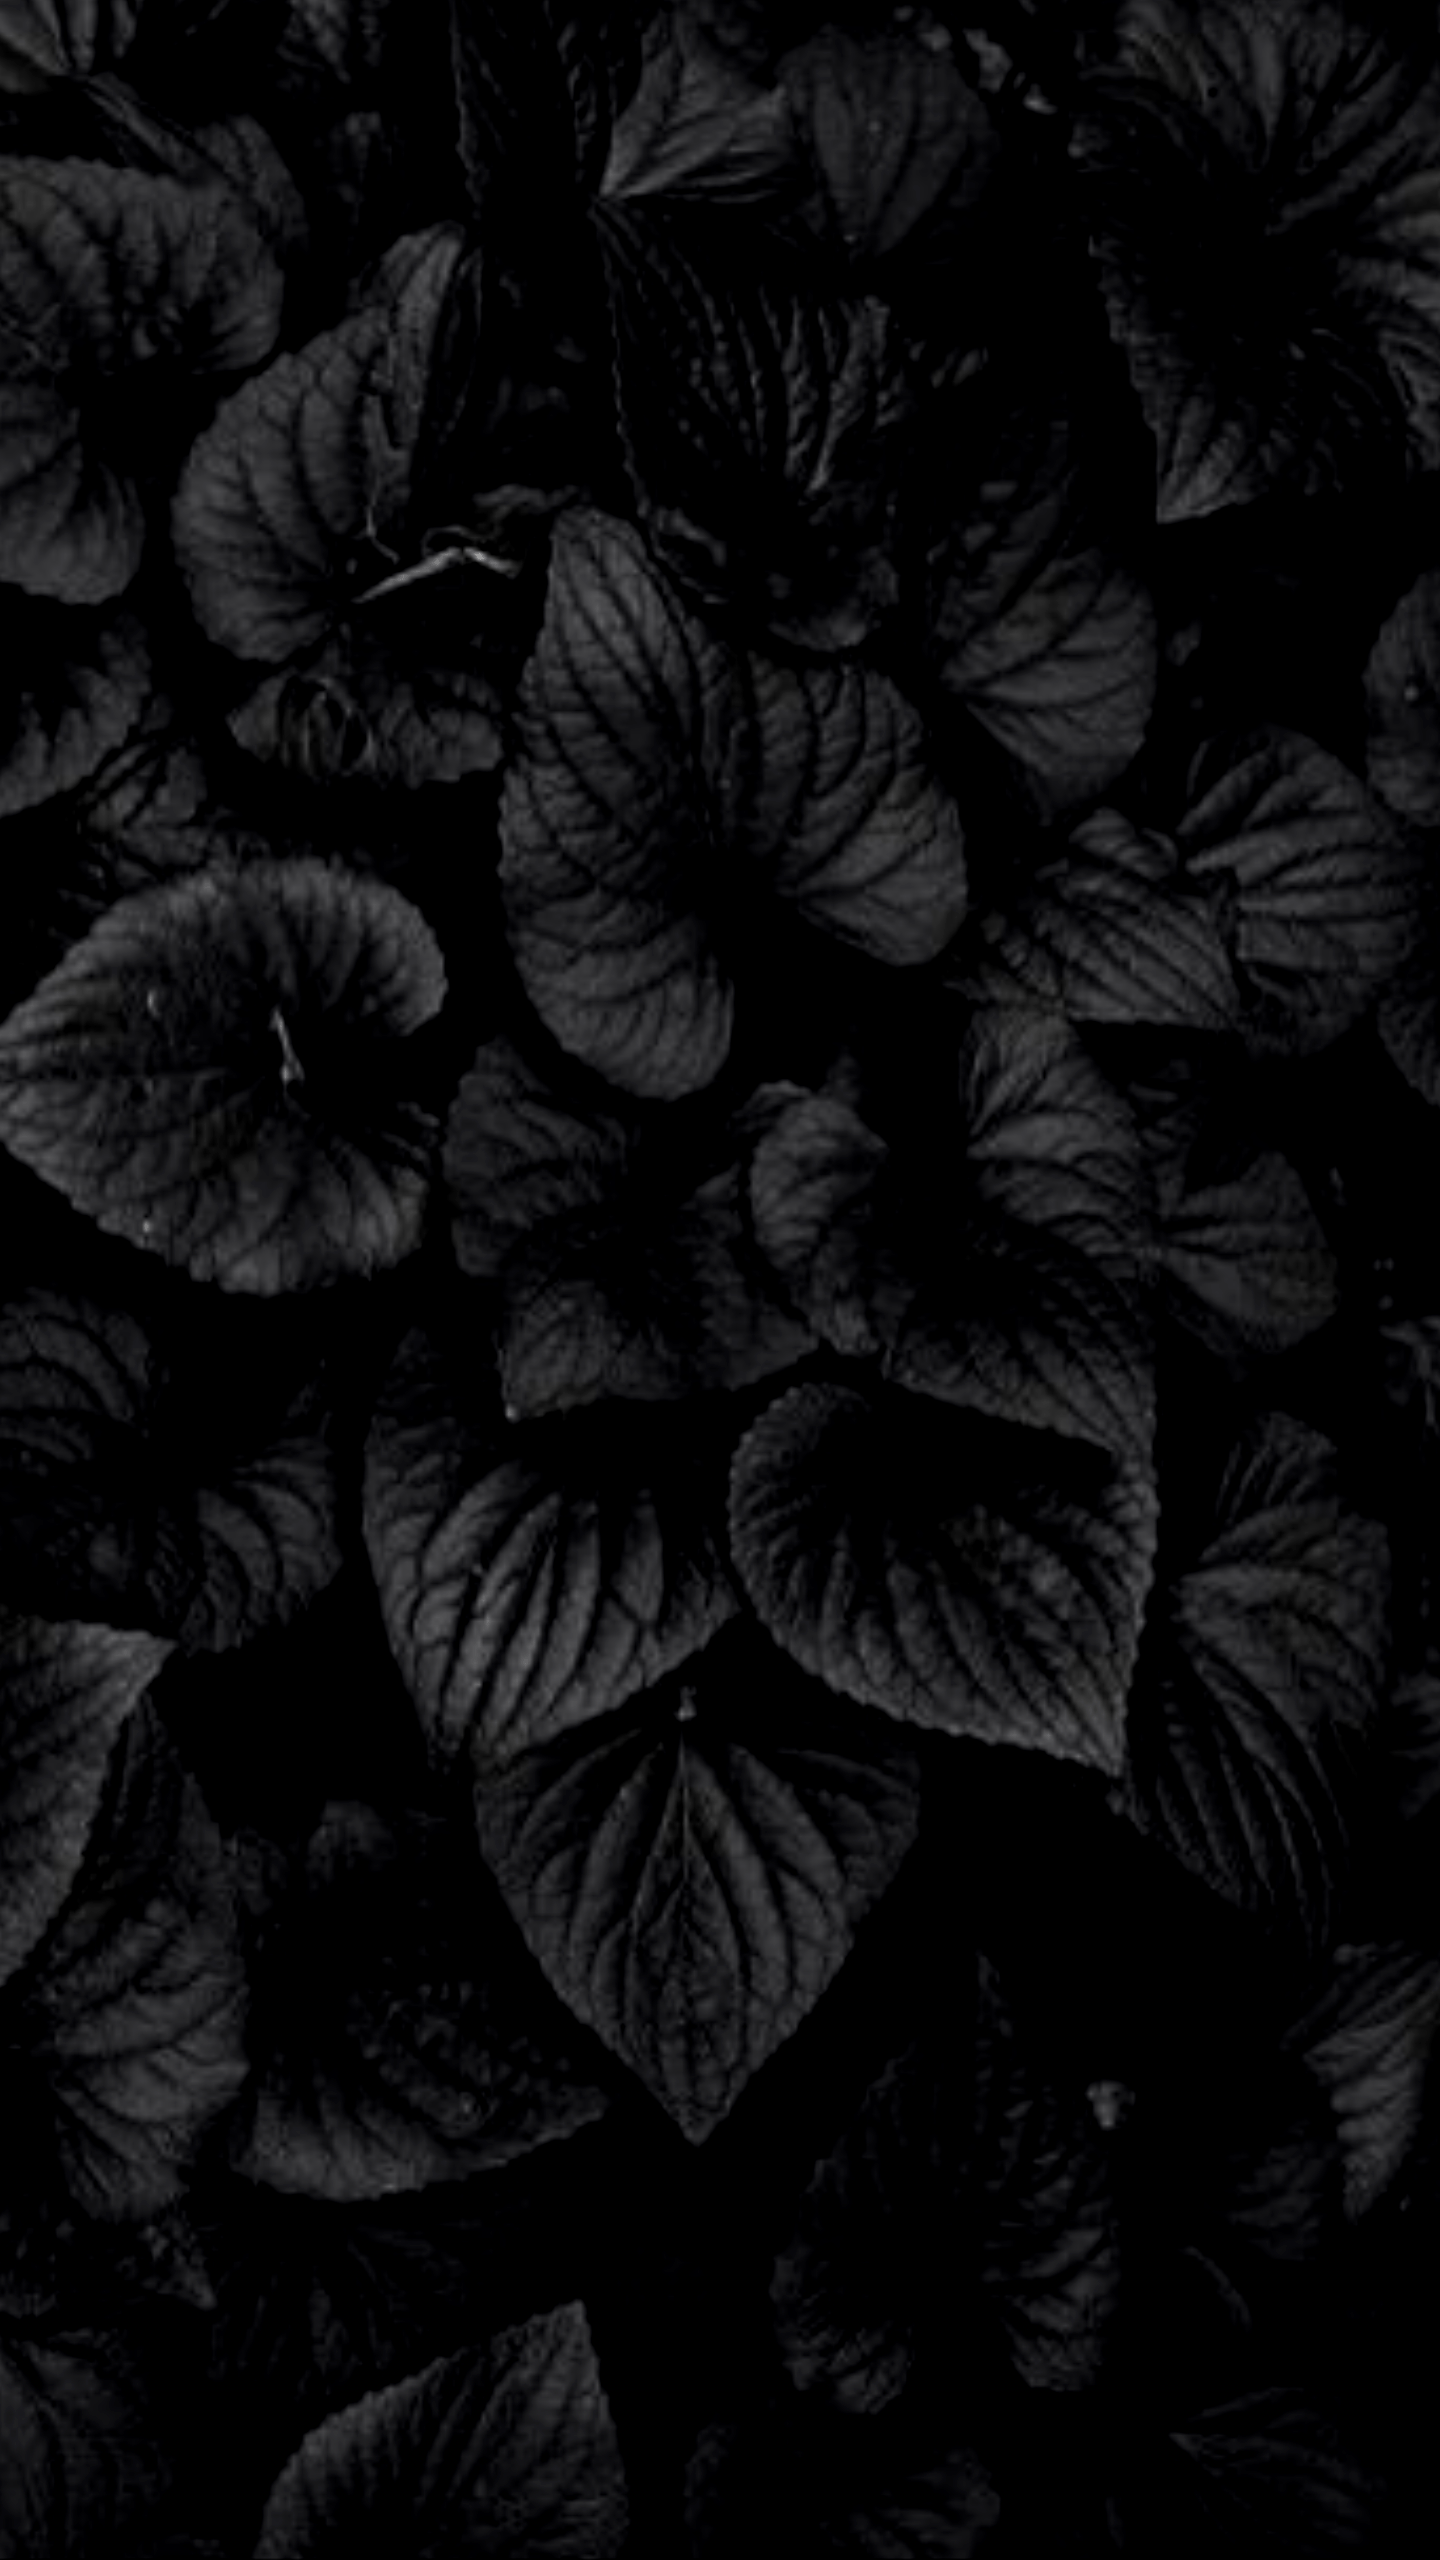 4k Phone Black Wallpapers Wallpaper Cave